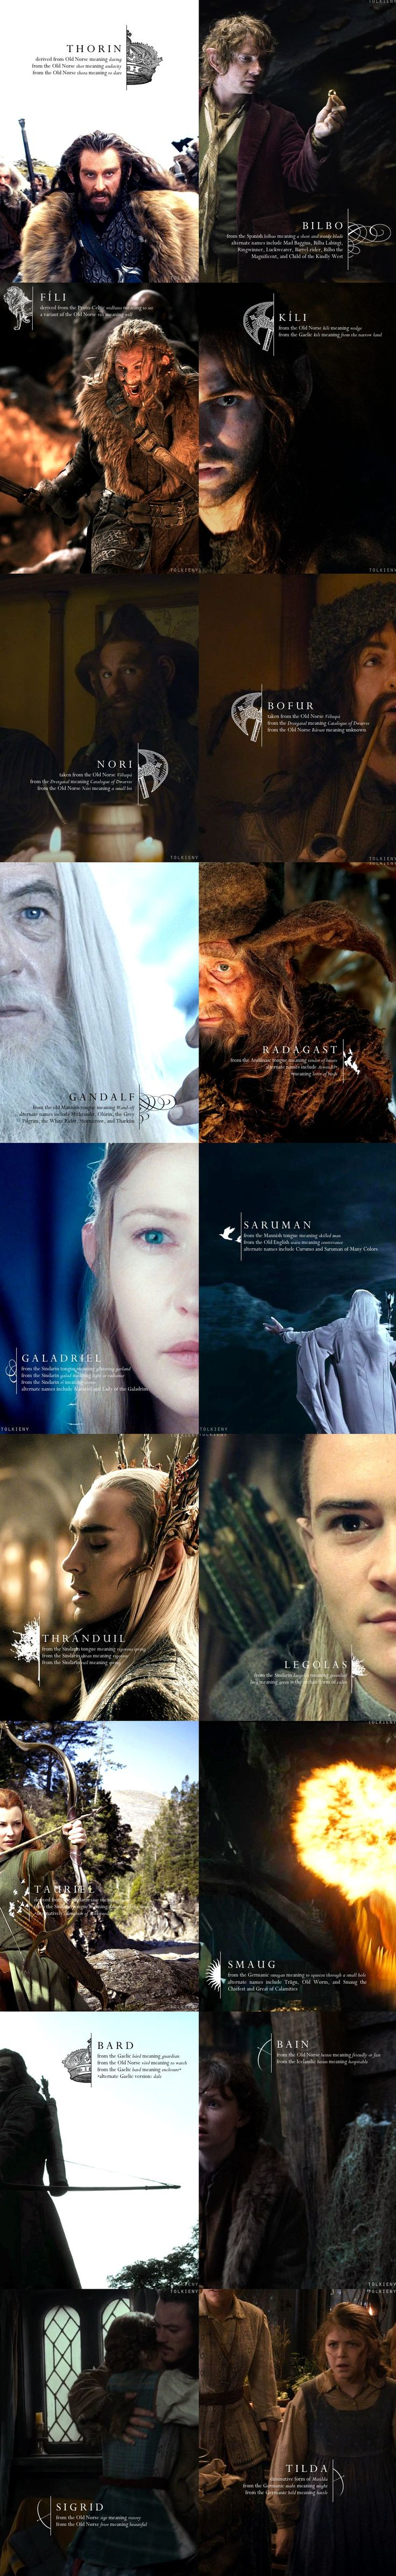 Meanings of Names in The Hobbit. Sigrid, Tilda, and Tauriel shouldn't even be in the hobbit. Especially tauriel.